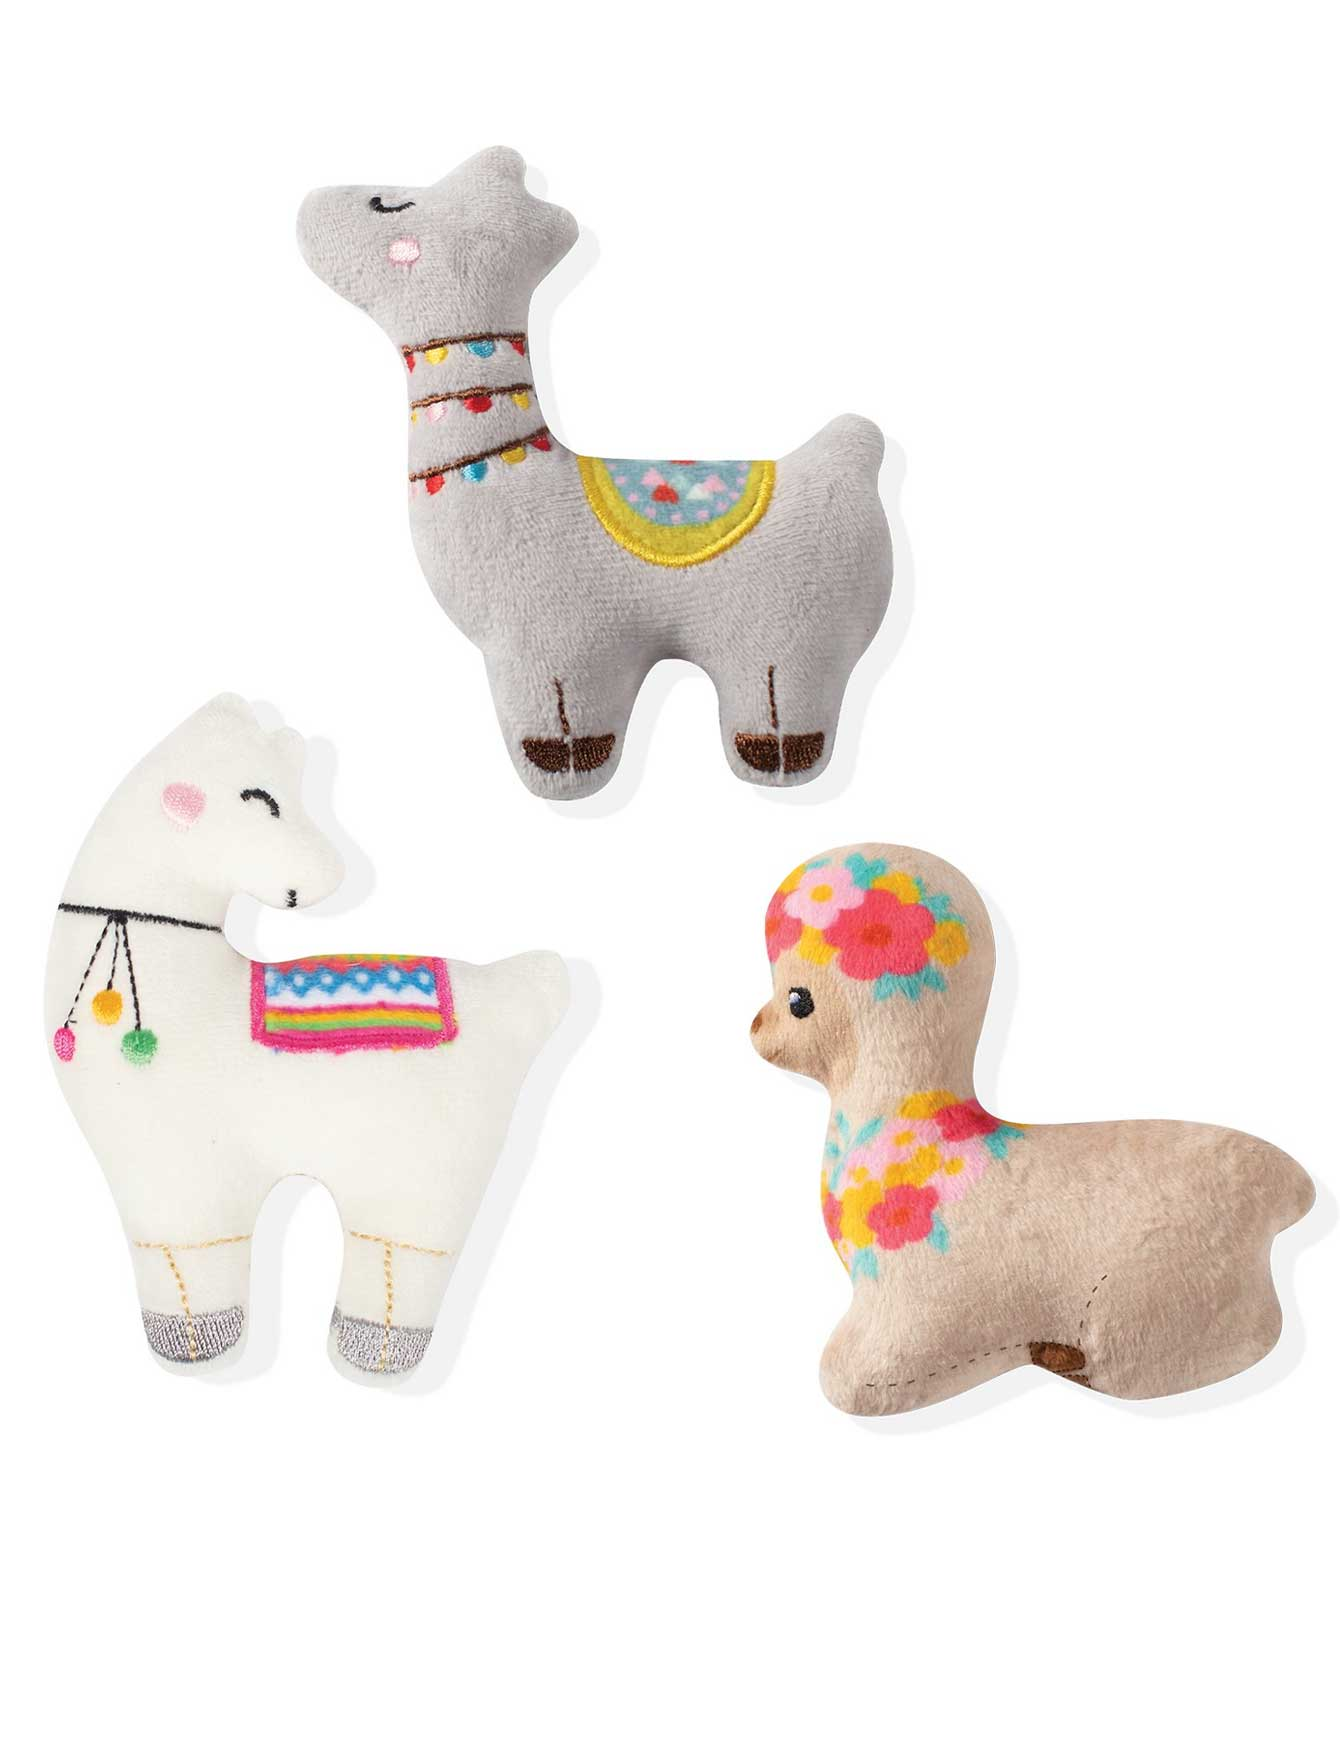 Fringe Studio Unstuffed Llama Love, Dog Squeaky Plush Toy | Perromart Online Pet Store Singapore